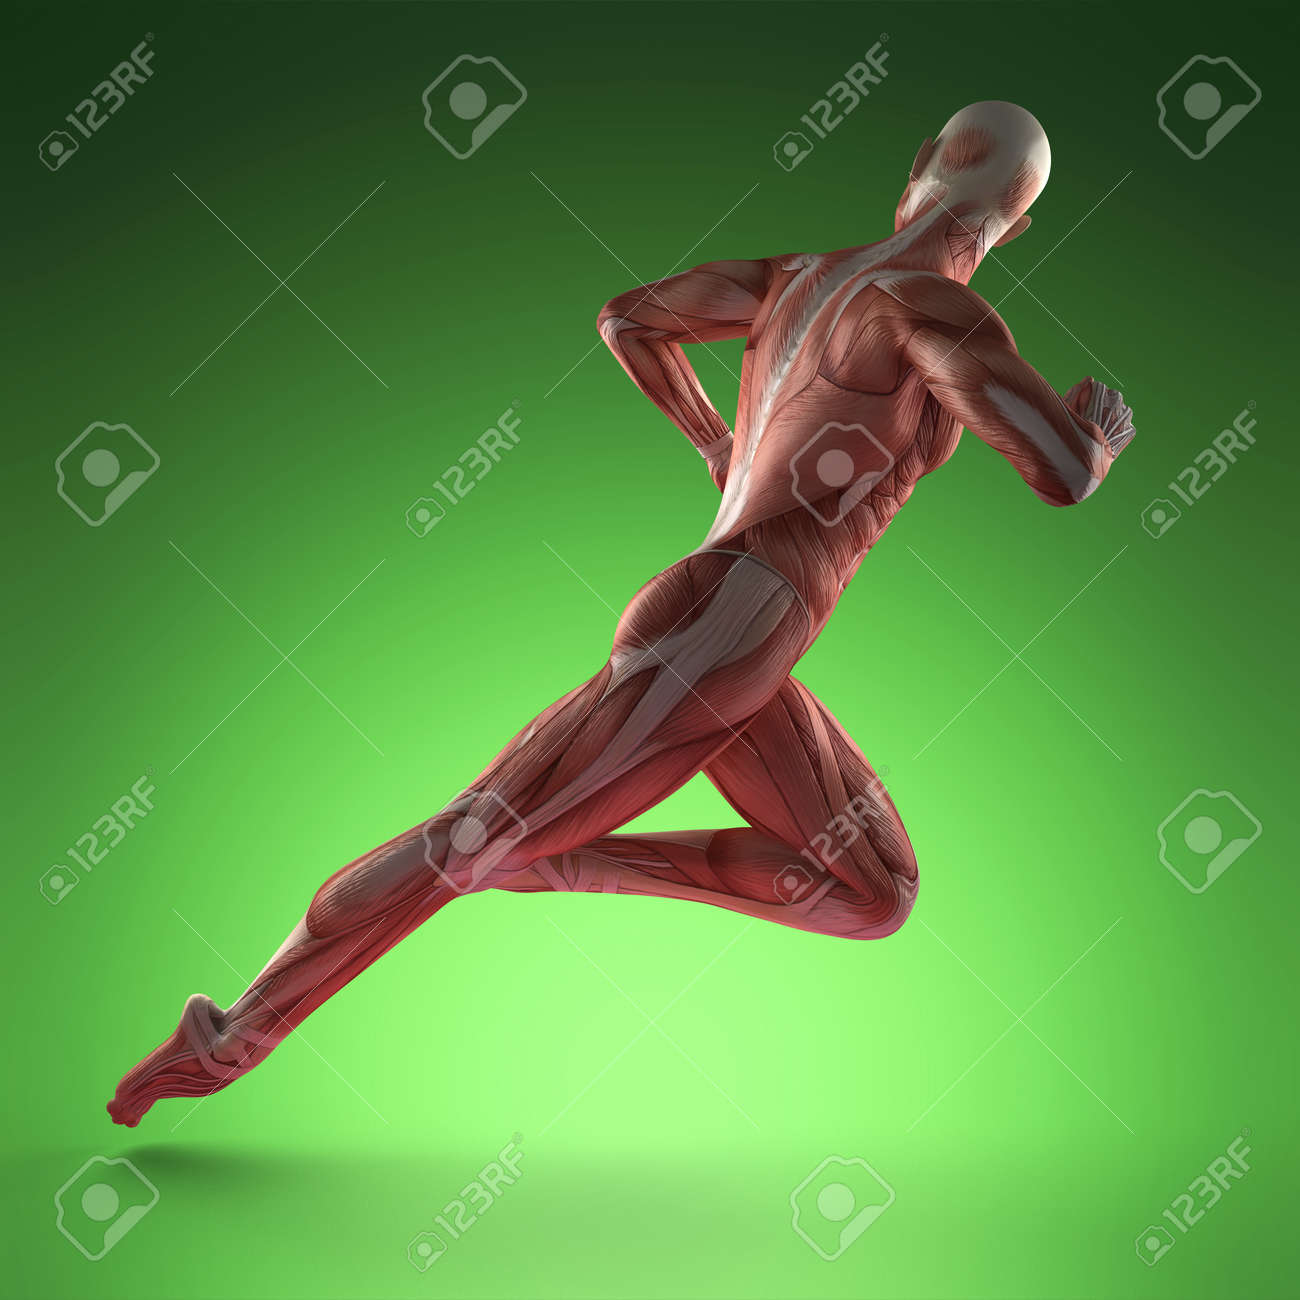 Human Muscle Anatomy Stock Photo Picture And Royalty Free Image